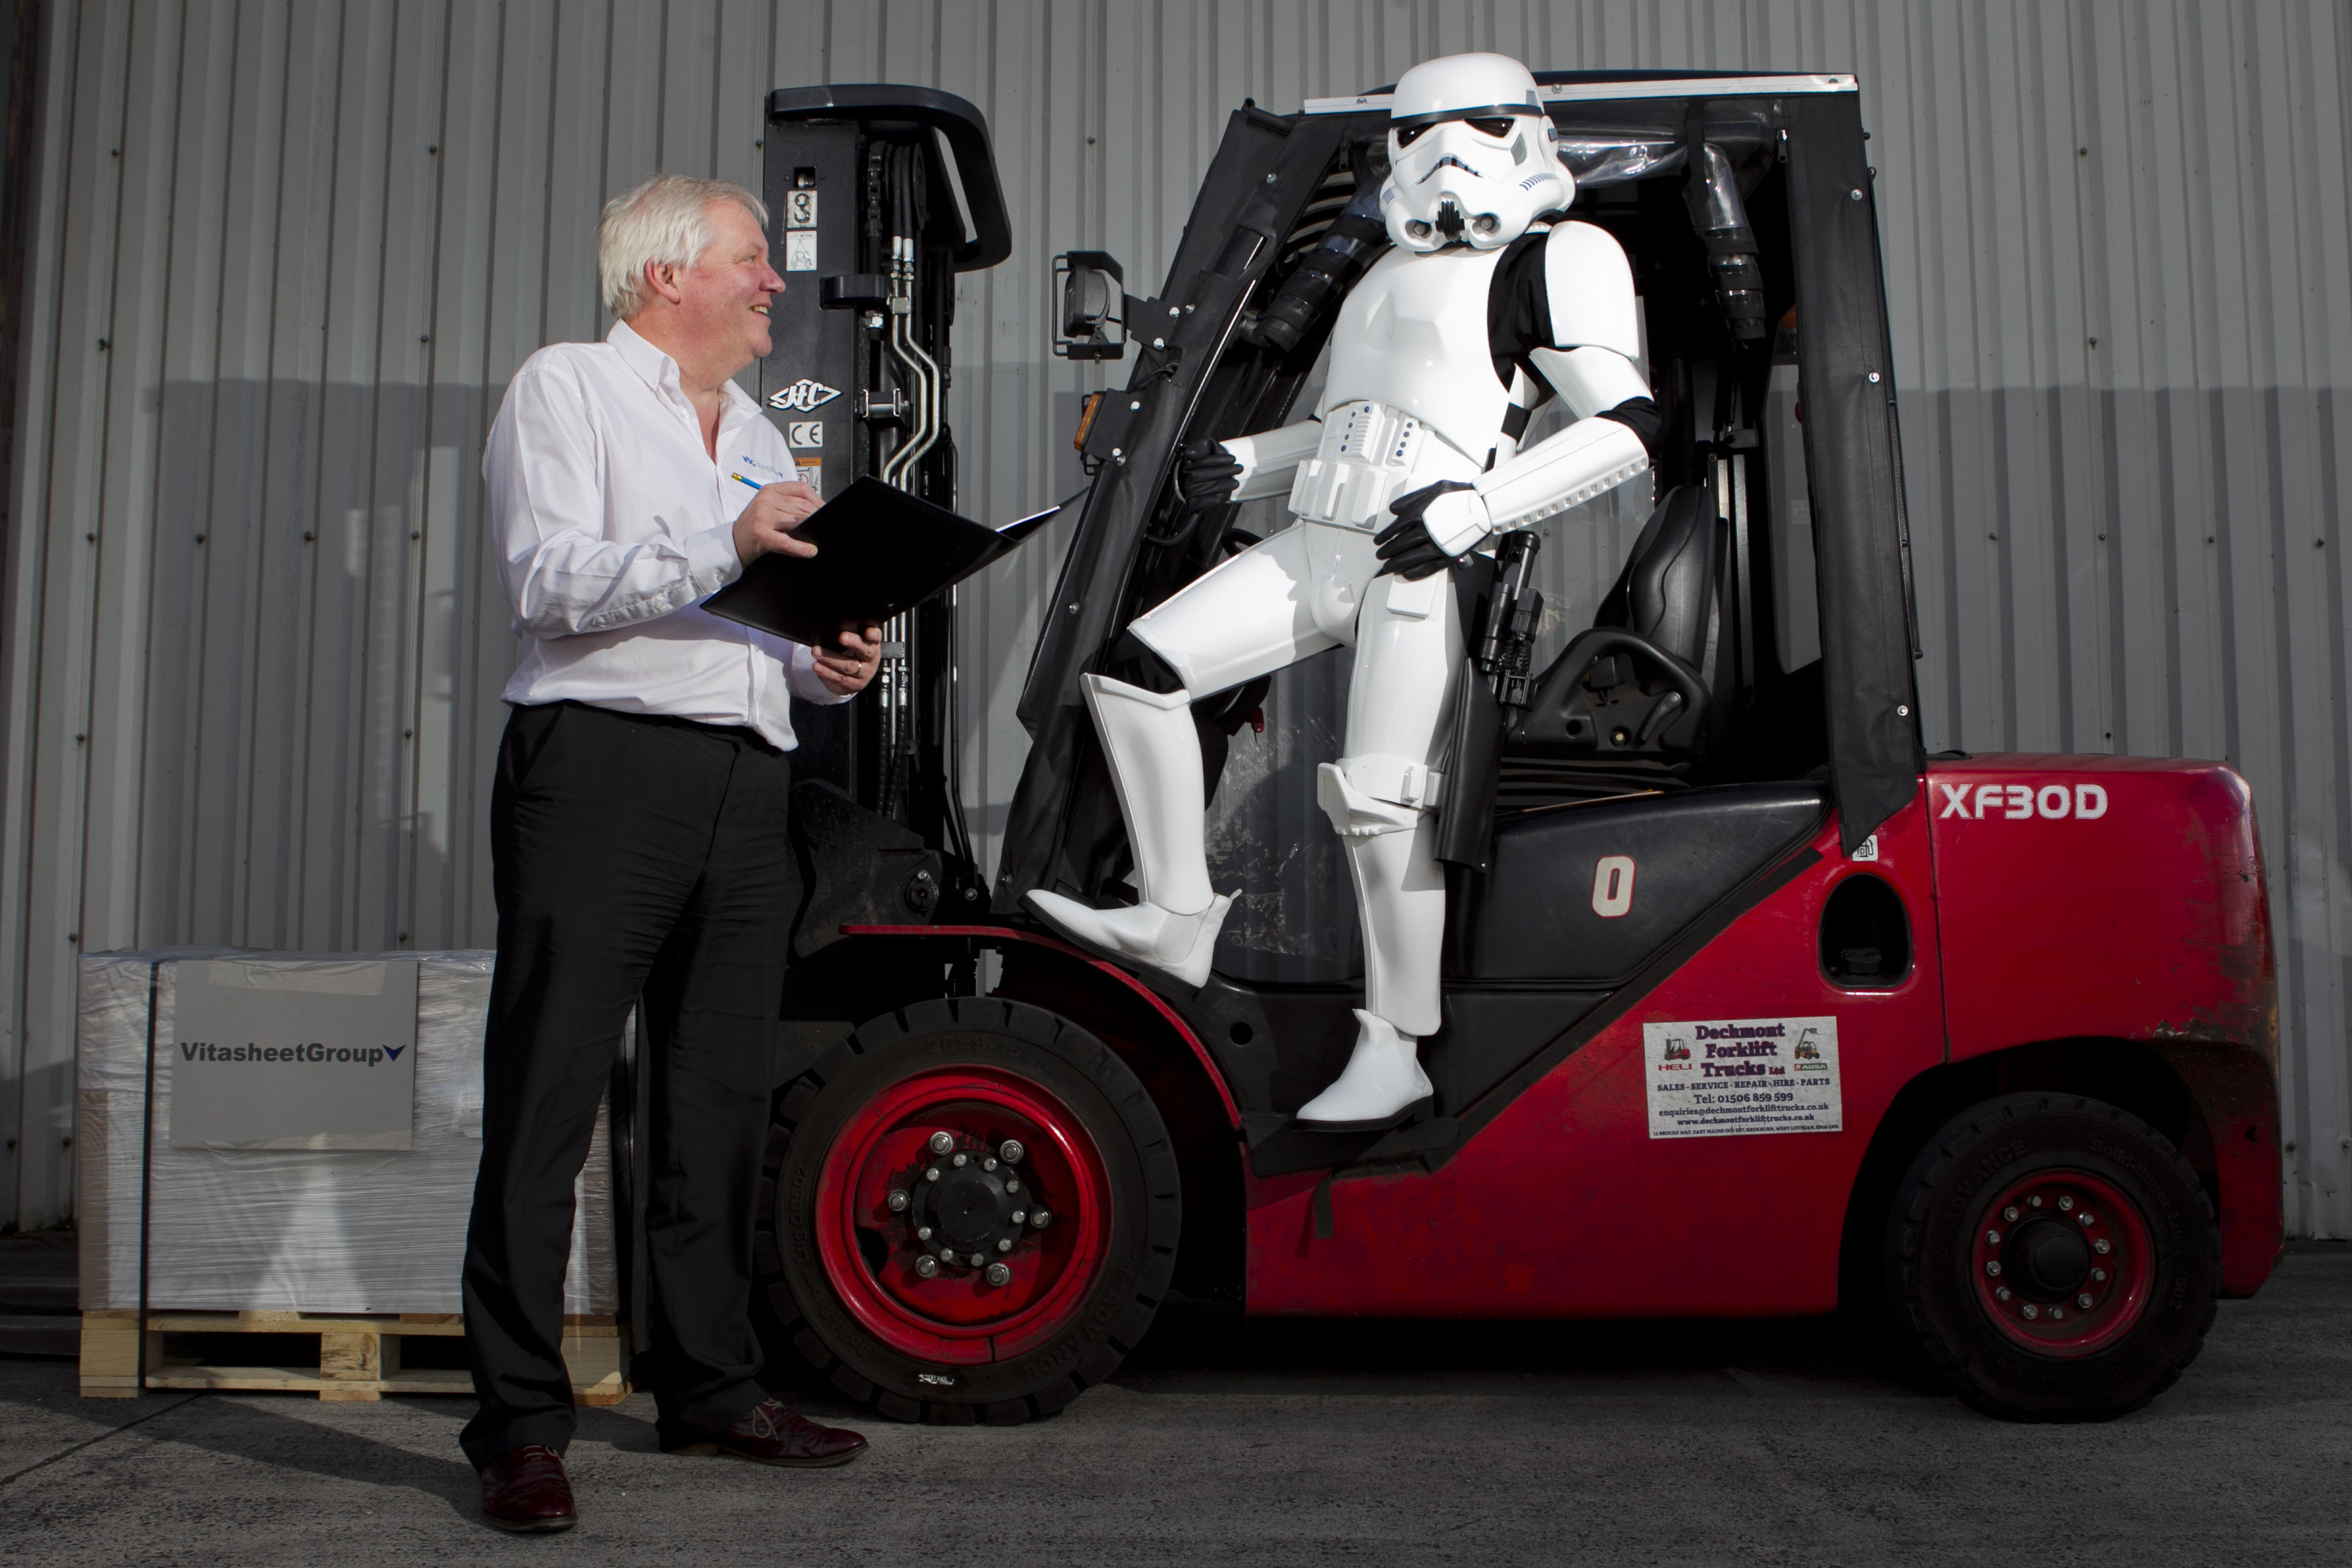 Tom Harkins, director at Vita Sheet Group, with a Star Wars Stormtrooper (reporter John Paul Breslin in costume) - The company supplied the plastic used to make the Stormtrooper outfits for the original Star Wars films. (Andrew Cawley, Sunday Post)